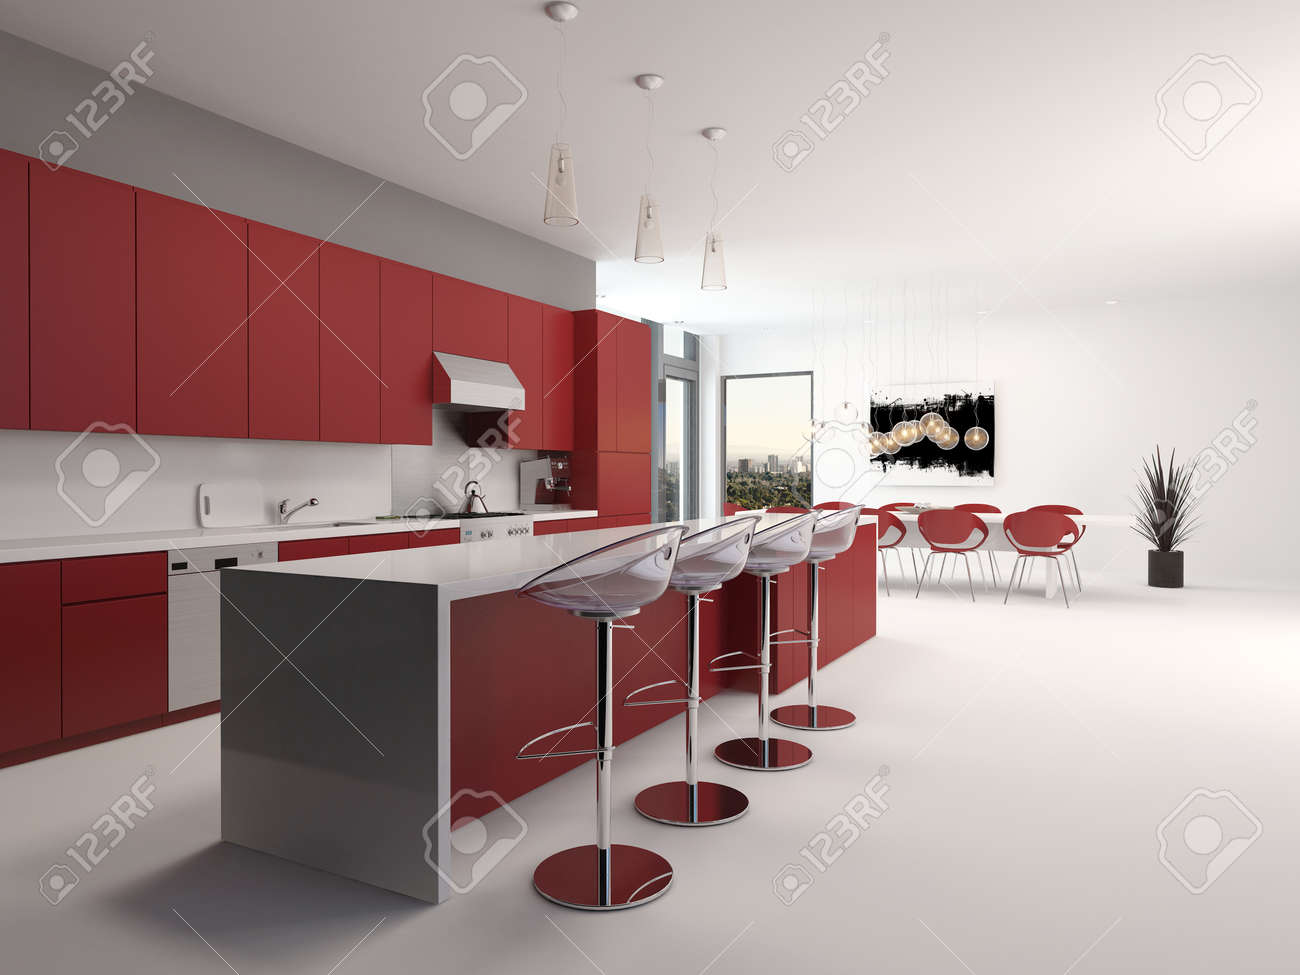 Modern open plan red kitchen interior with a long counter with..